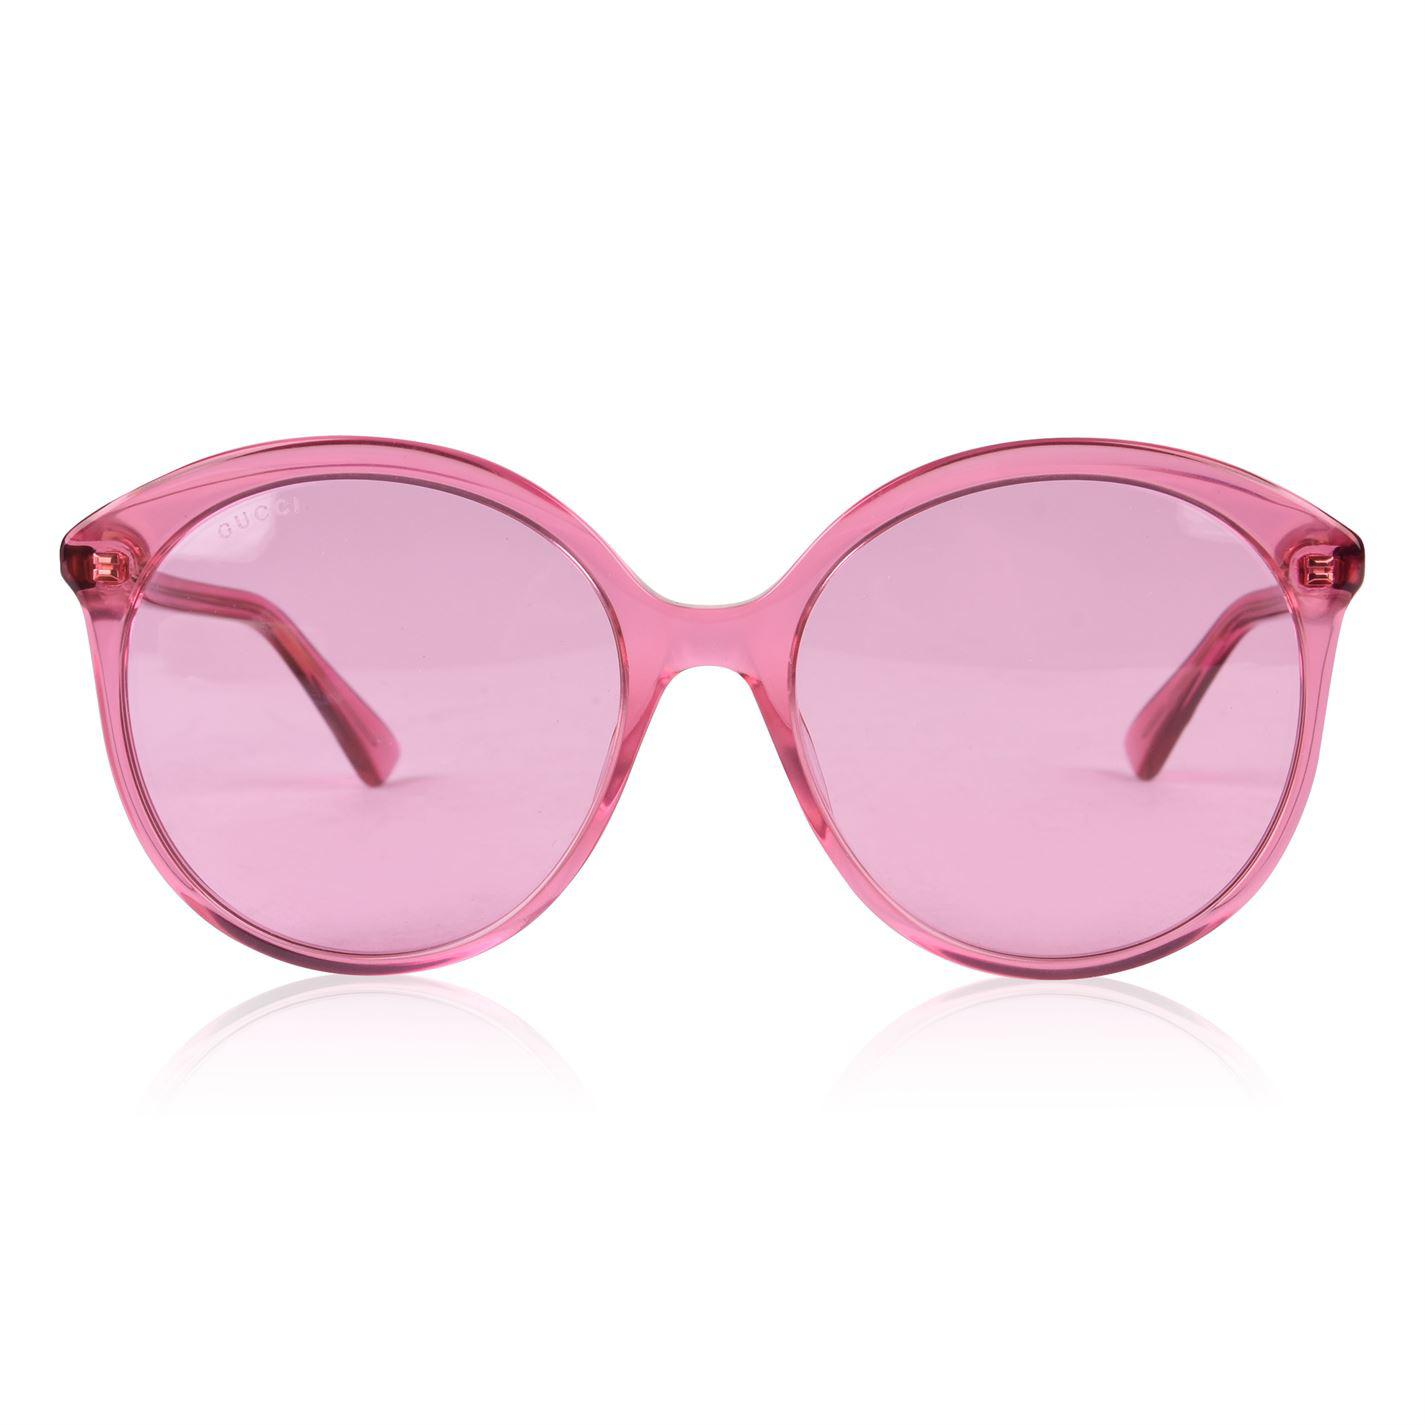 70ff721ec1 Gucci. Women s Pink Gg0257s Specialized Fit Round Frame Acetate Sunglasses